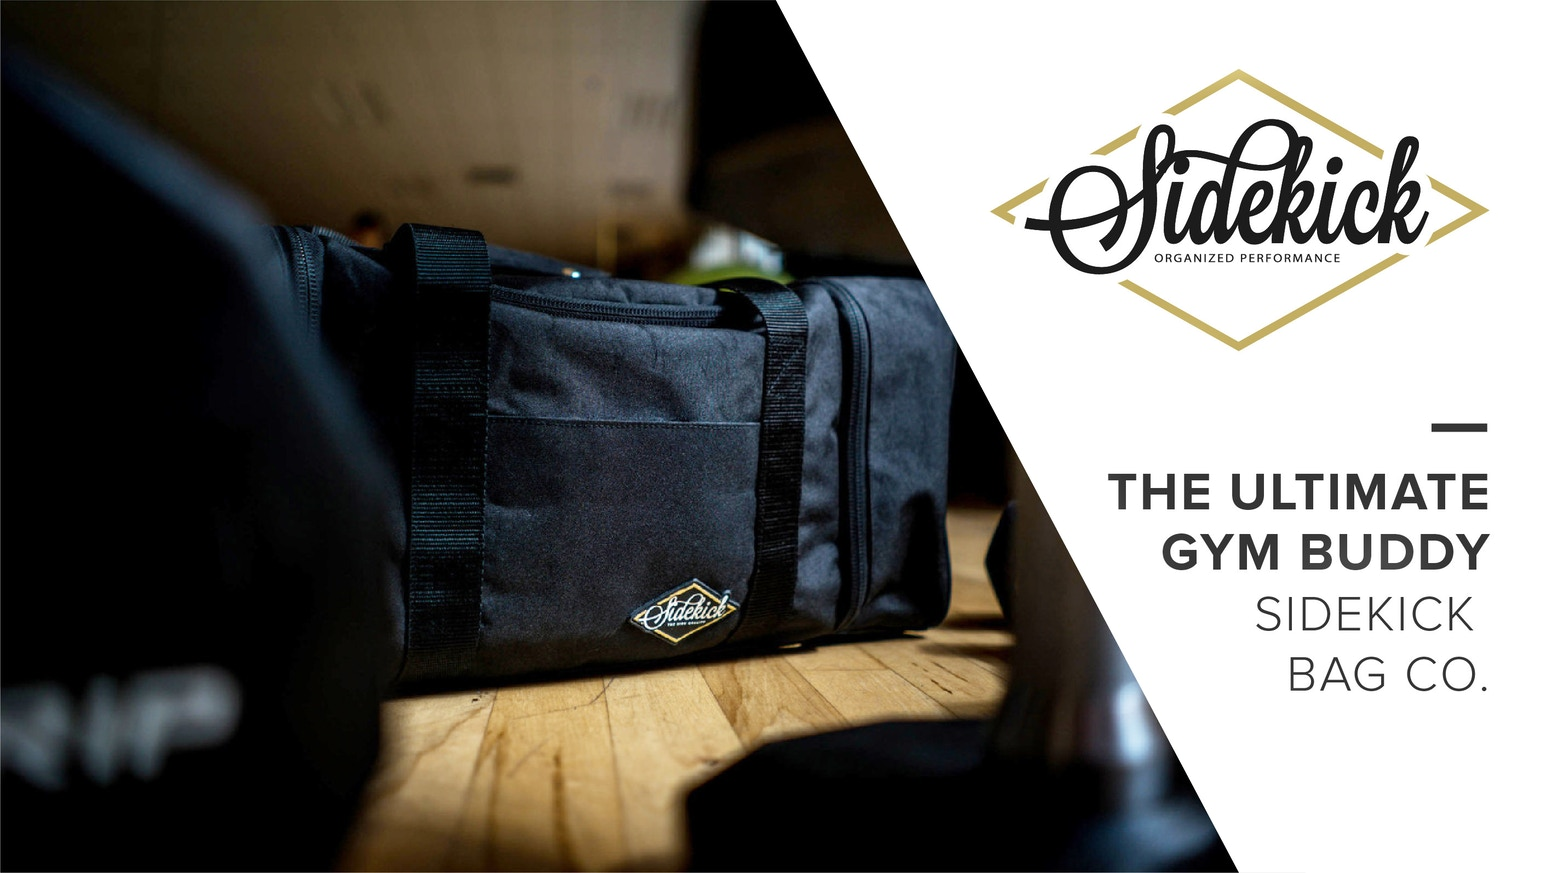 The Sidekick Bag is a premium duffle bag that combines fashion and functionality. Now you can have organized performance at the gym. Hey guys if you missed our campaign, you still have a chance!! Click the link below for more information!!